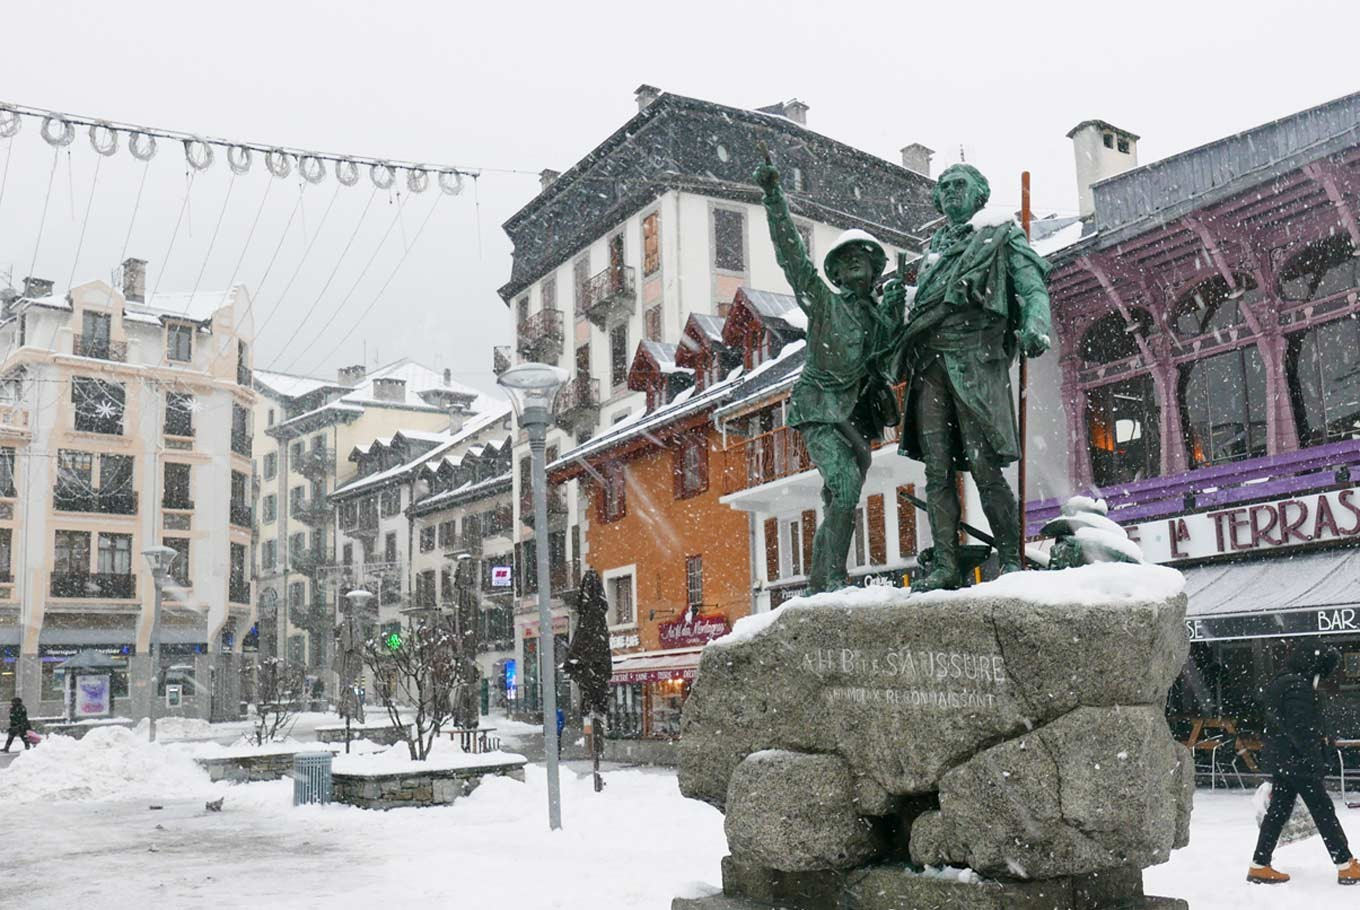 A monument dedicated to mountaineer, geologist, physicist, meteorologist, and Alpine explorer, Horace-Bénédict de Saussure (right) along with Jacques Balmat, a Chamonix-born mountaineer who was the first man to complete the ascent to the Mont Blanc in 1786. The monument is positioned in such a way that if you look from behind it, you will see Balmat's outstretched arm points to the Mont Blanc's summit.